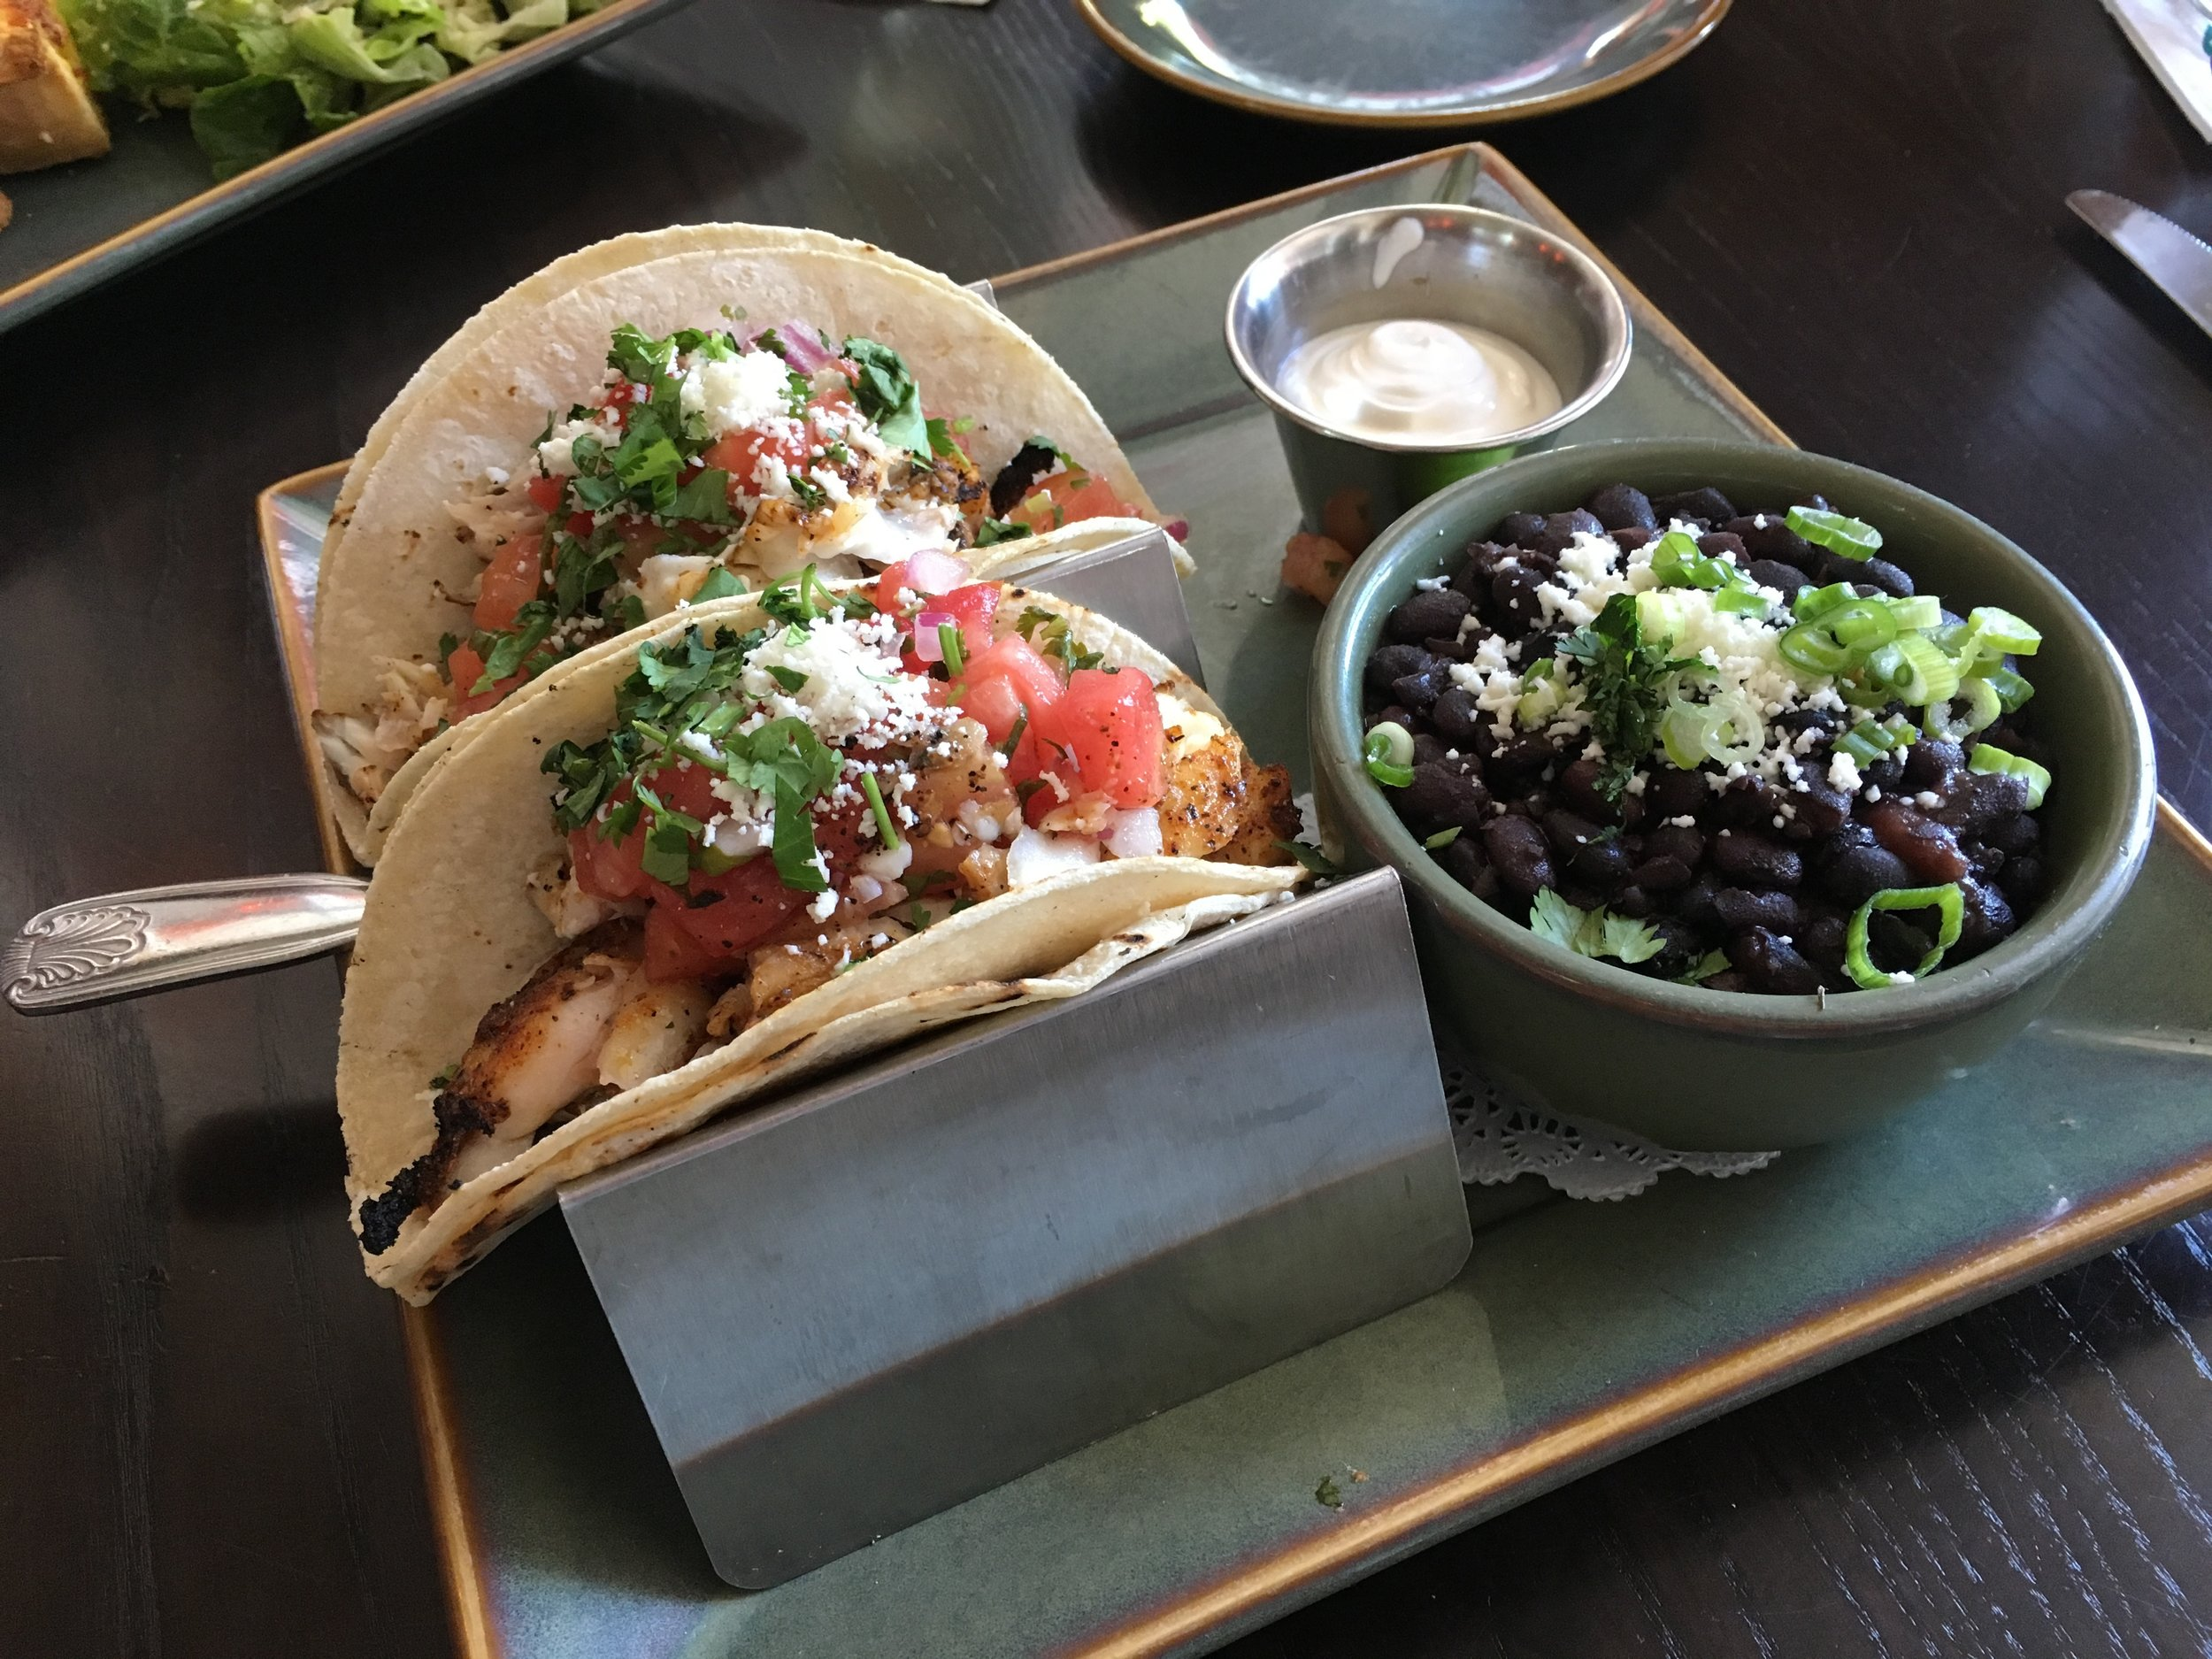 Blackened grouper tacos with black beans